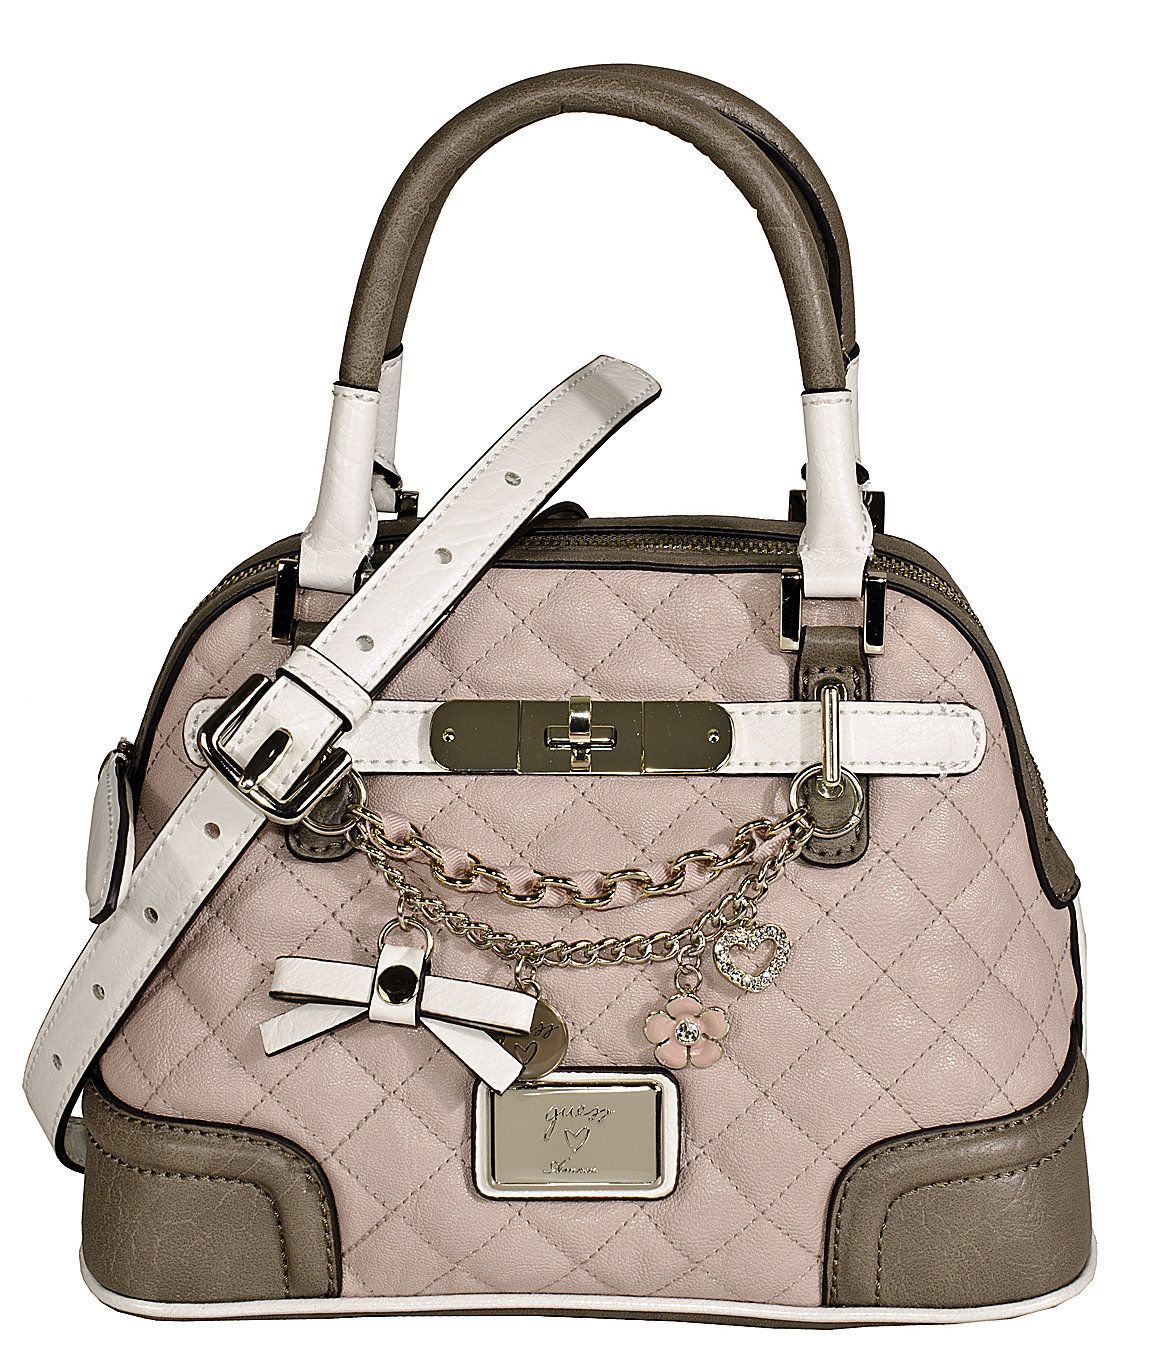 I Found Guess Amour Dome Satchel Purse Handbag On Wish Check It Out